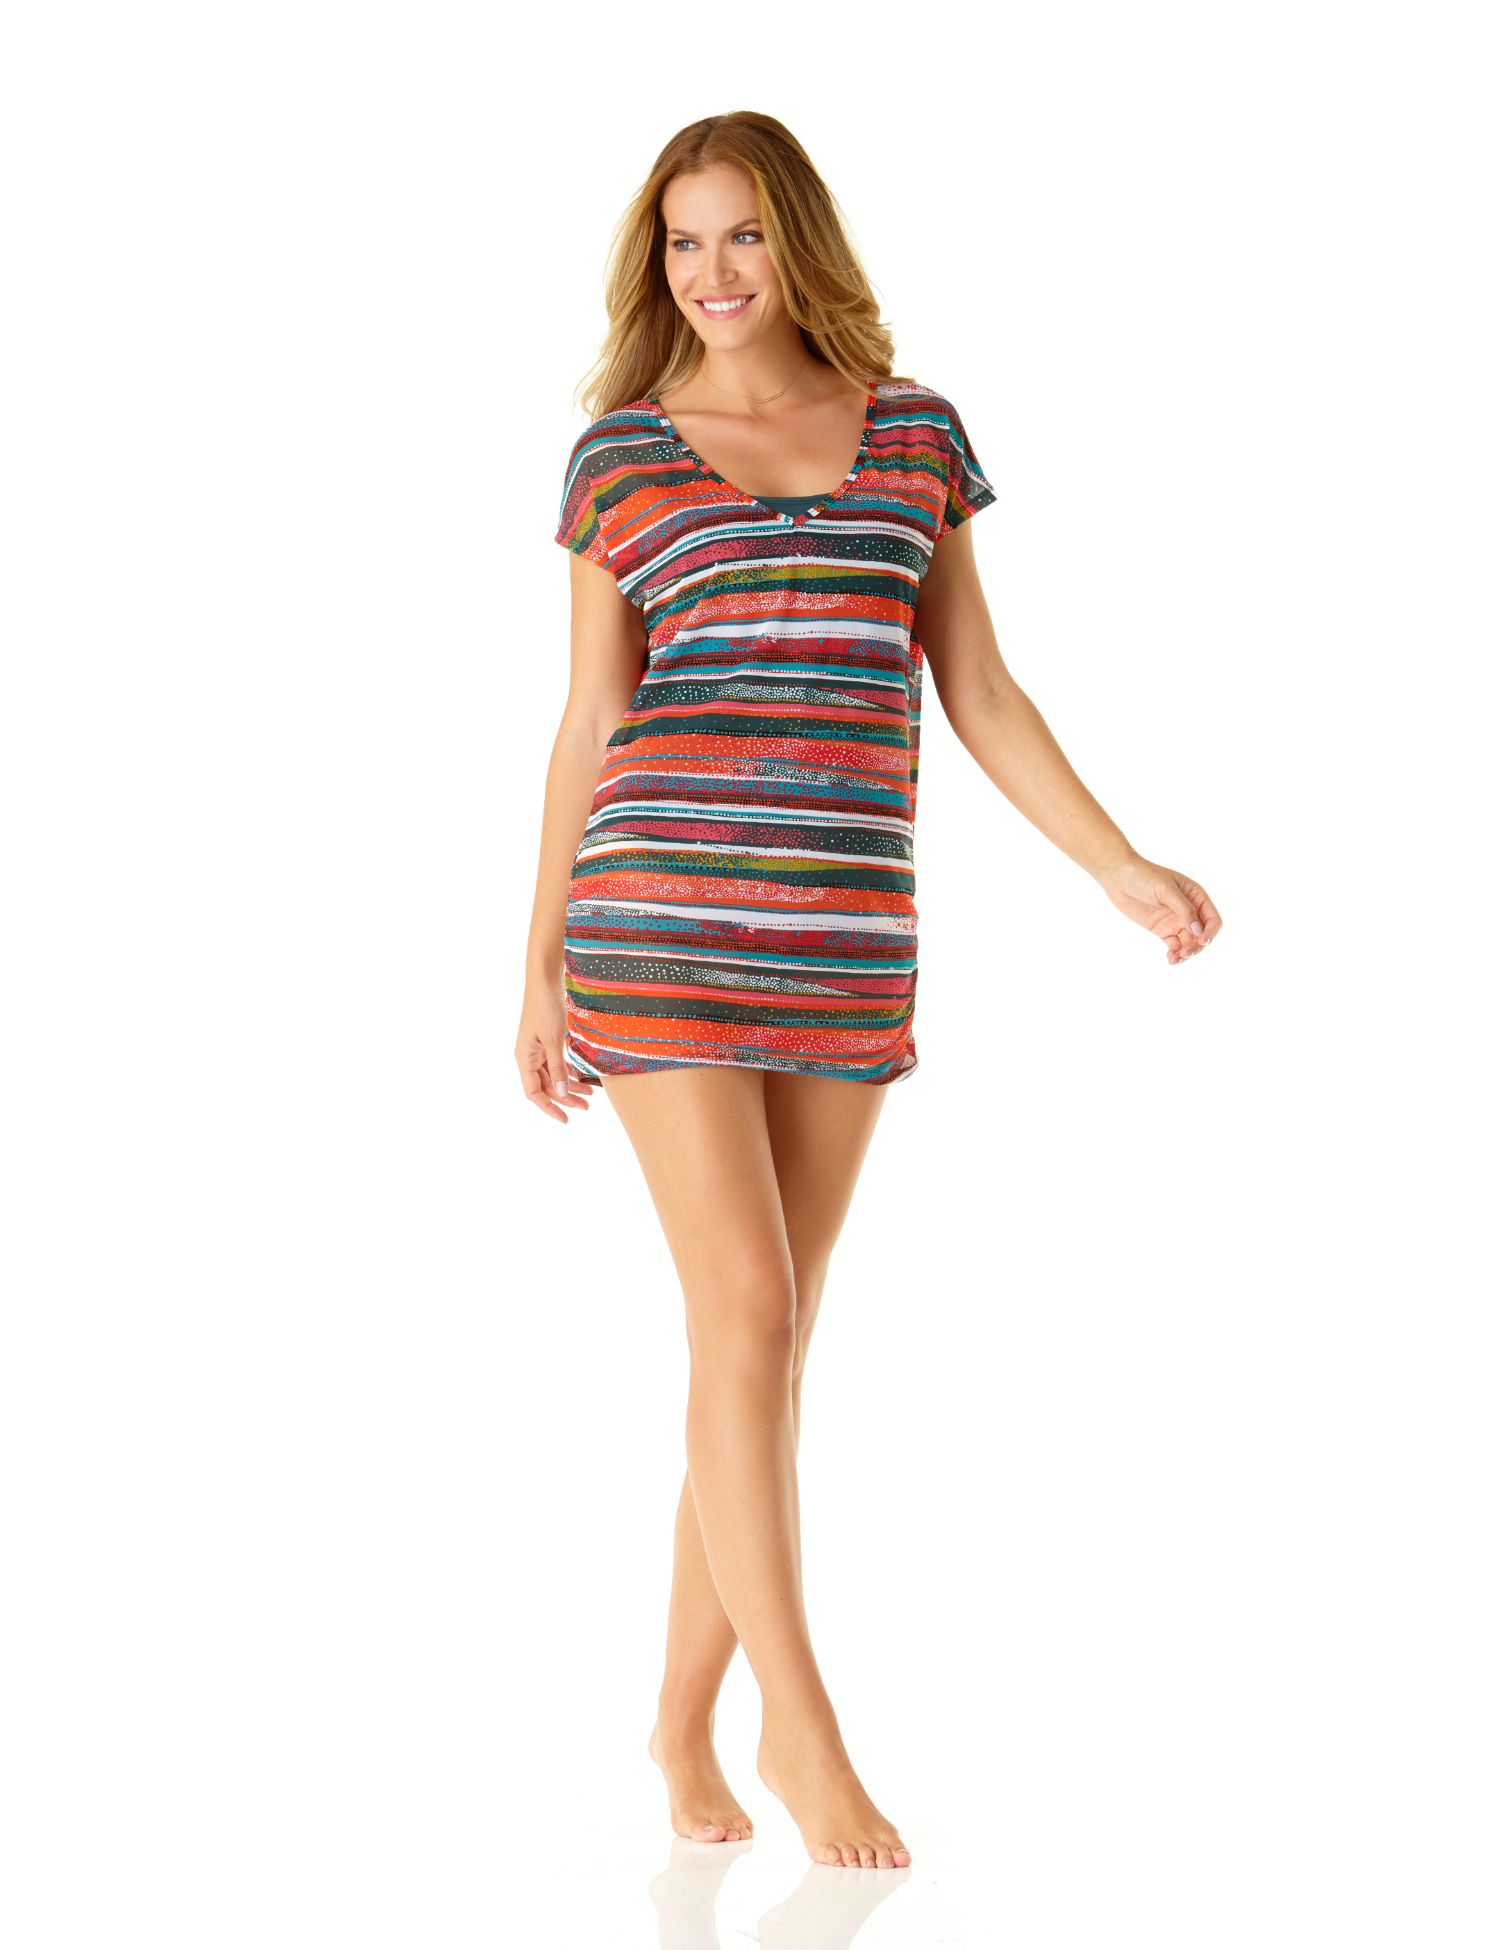 Anne Cole® Sand Stripe Mesh Swimsuit Cover-Up Tee - Multi - Front